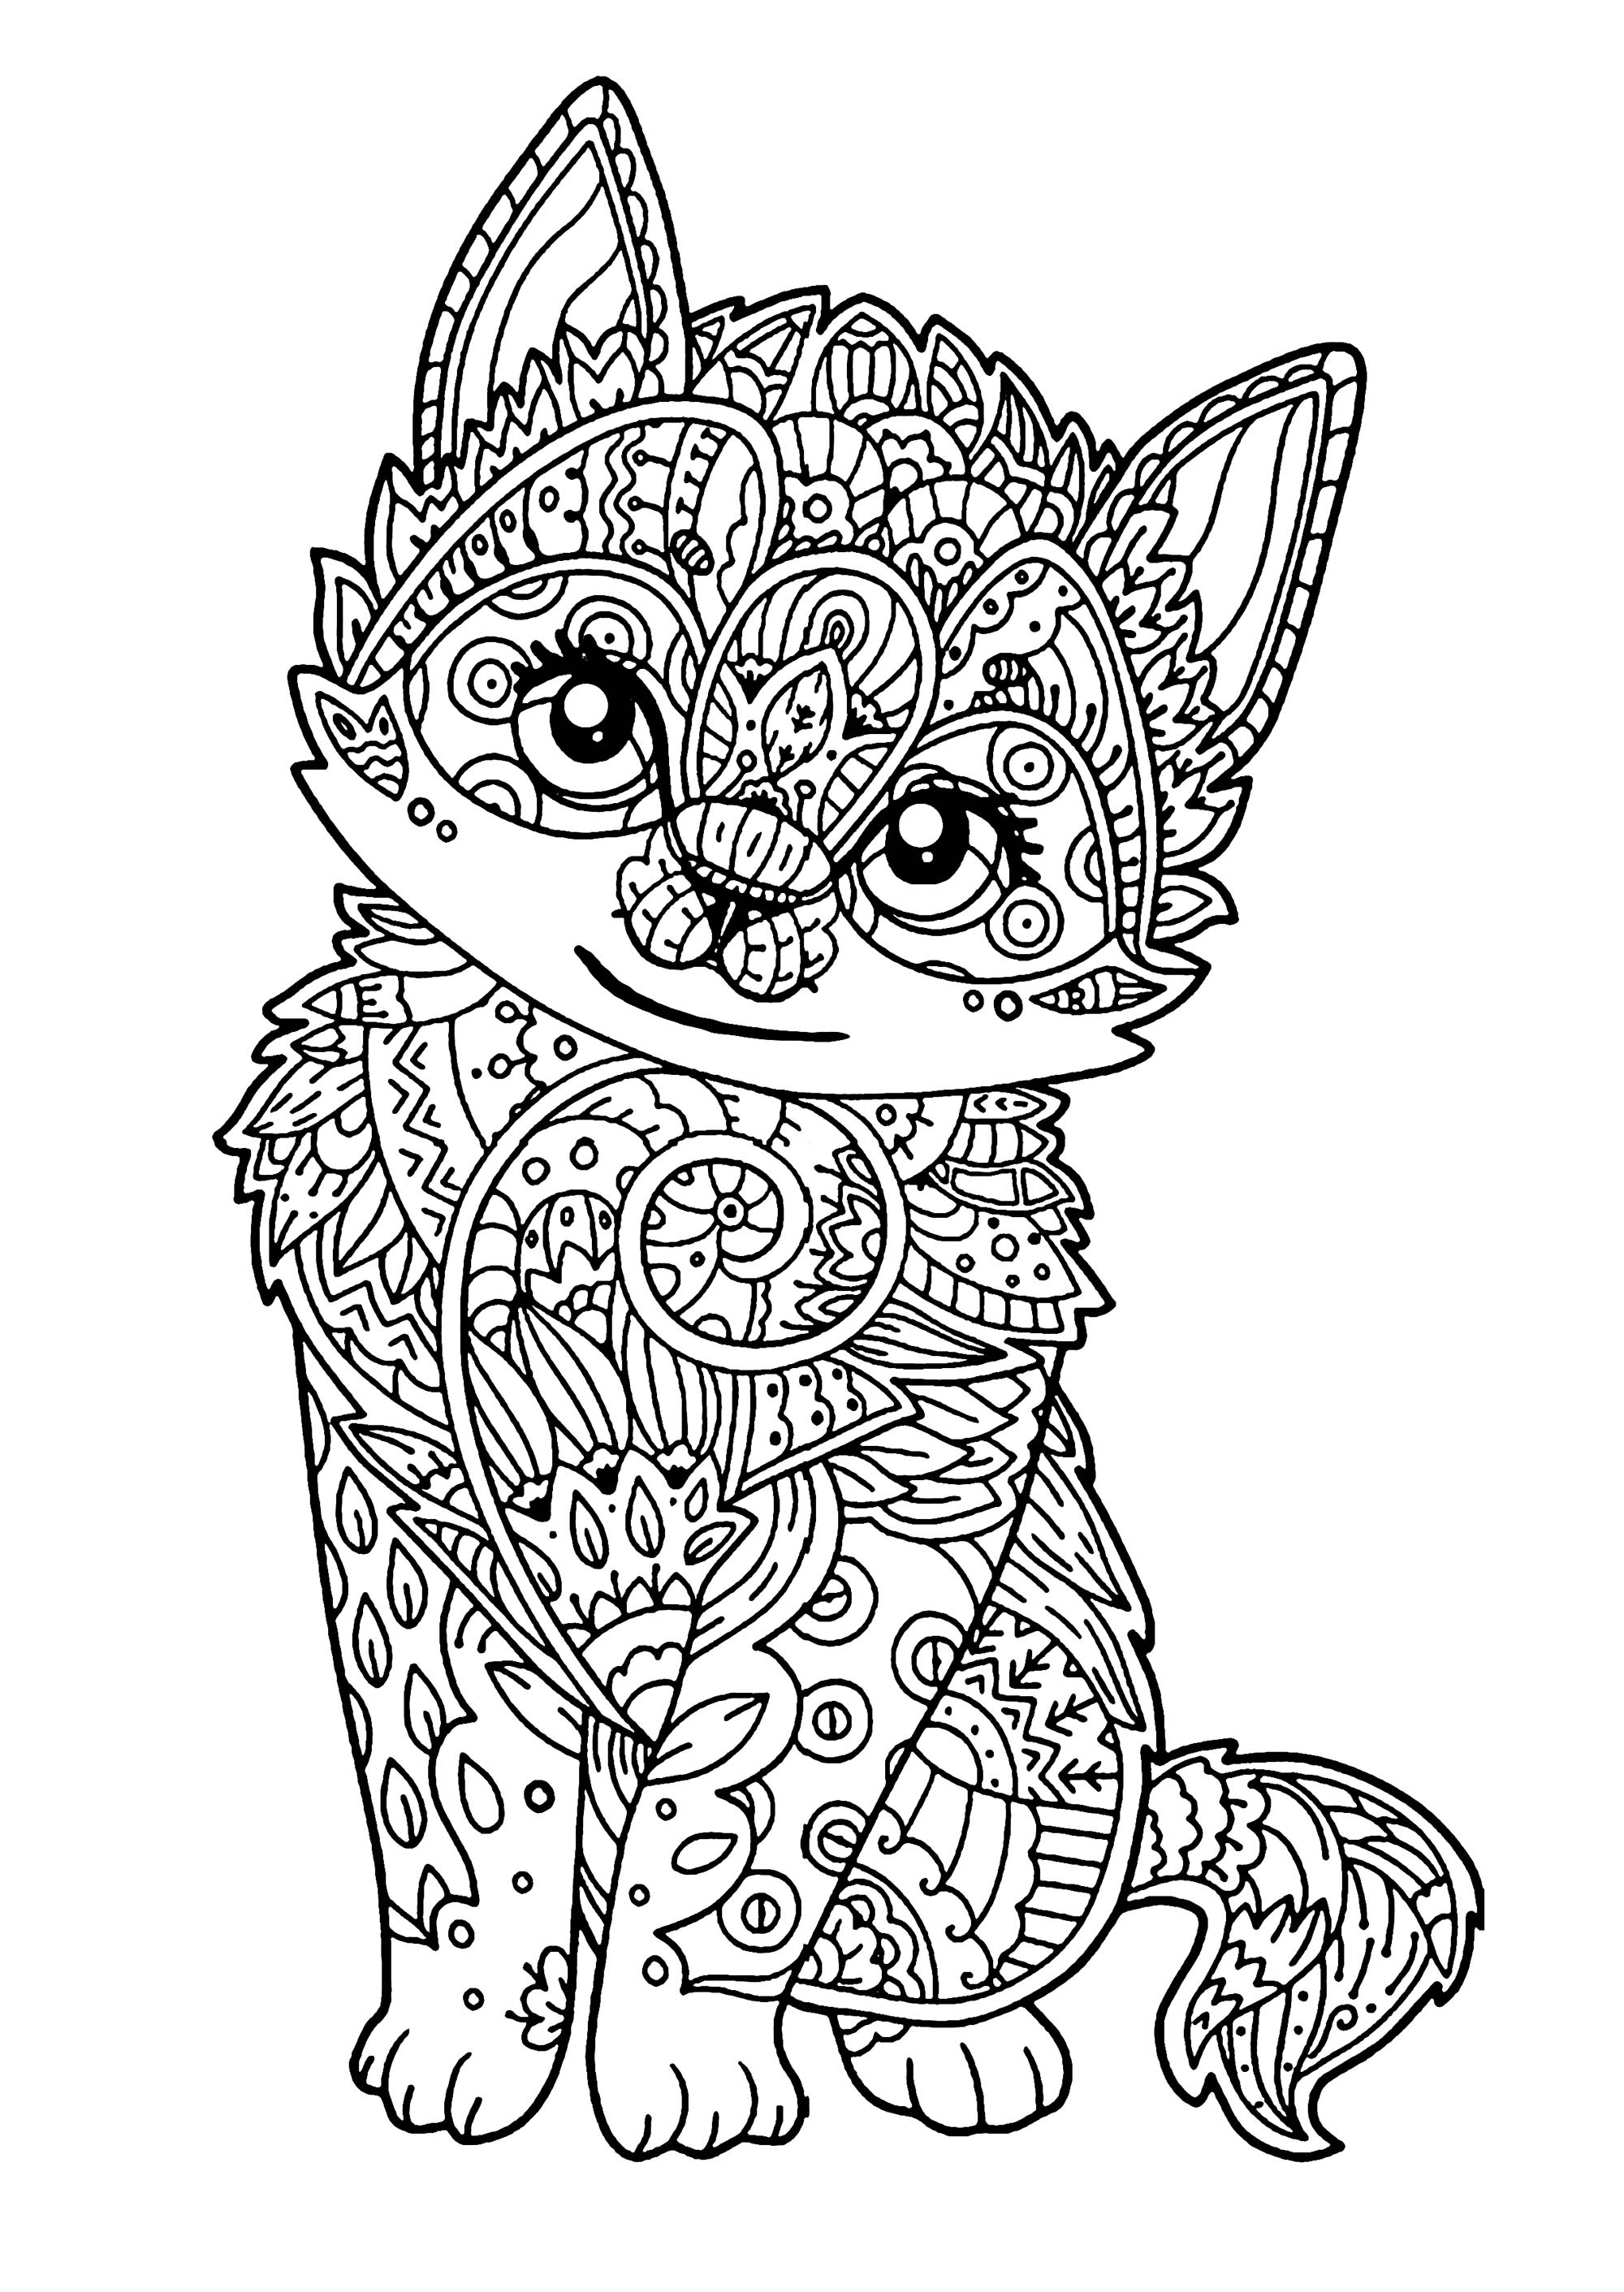 Cats for kids - Cats Kids Coloring Pages